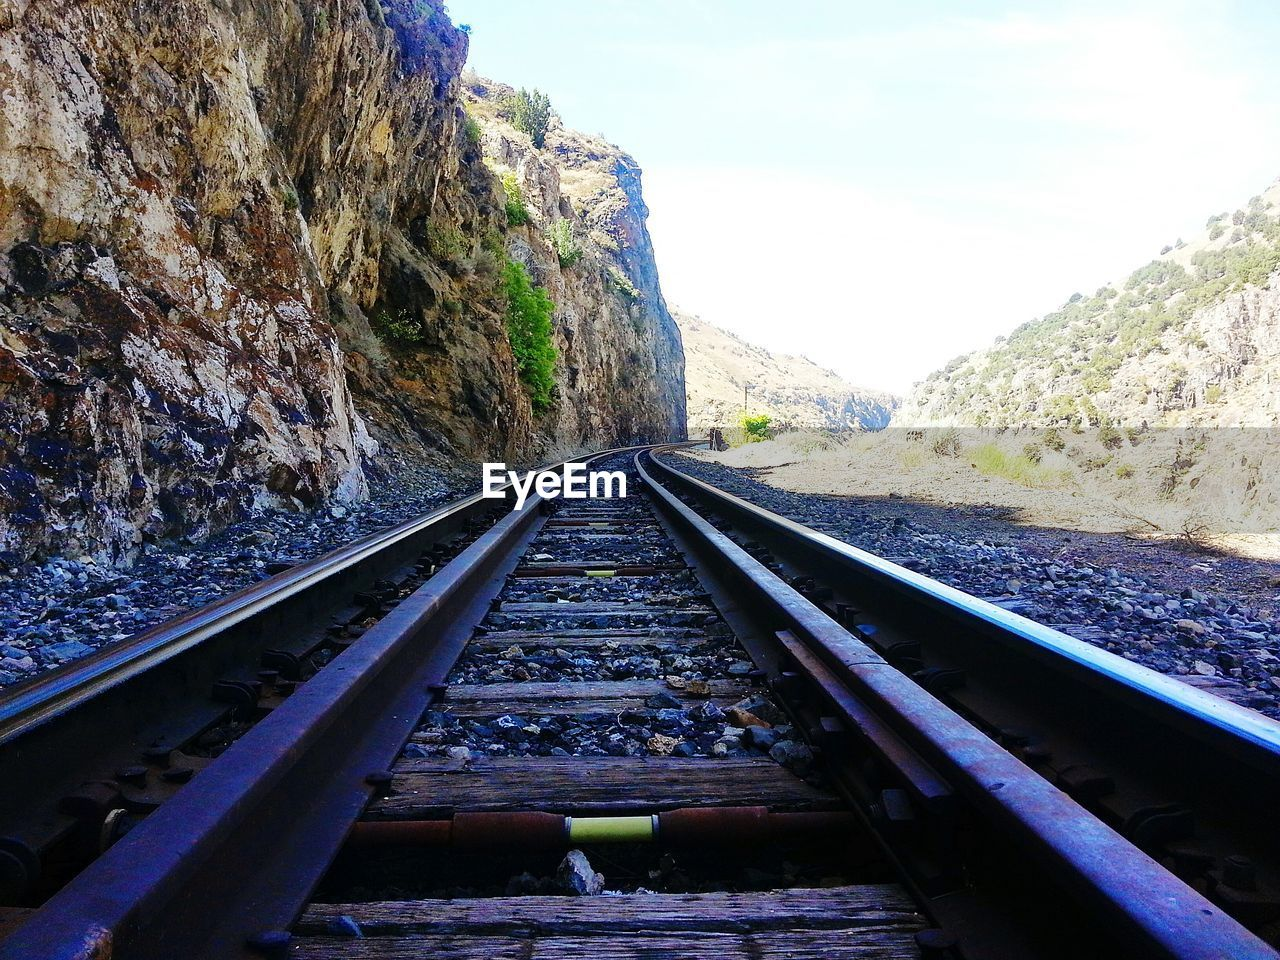 railroad track, transportation, rail transportation, day, rock - object, nature, no people, the way forward, tranquility, tranquil scene, beauty in nature, scenics, outdoors, mountain, landscape, sky